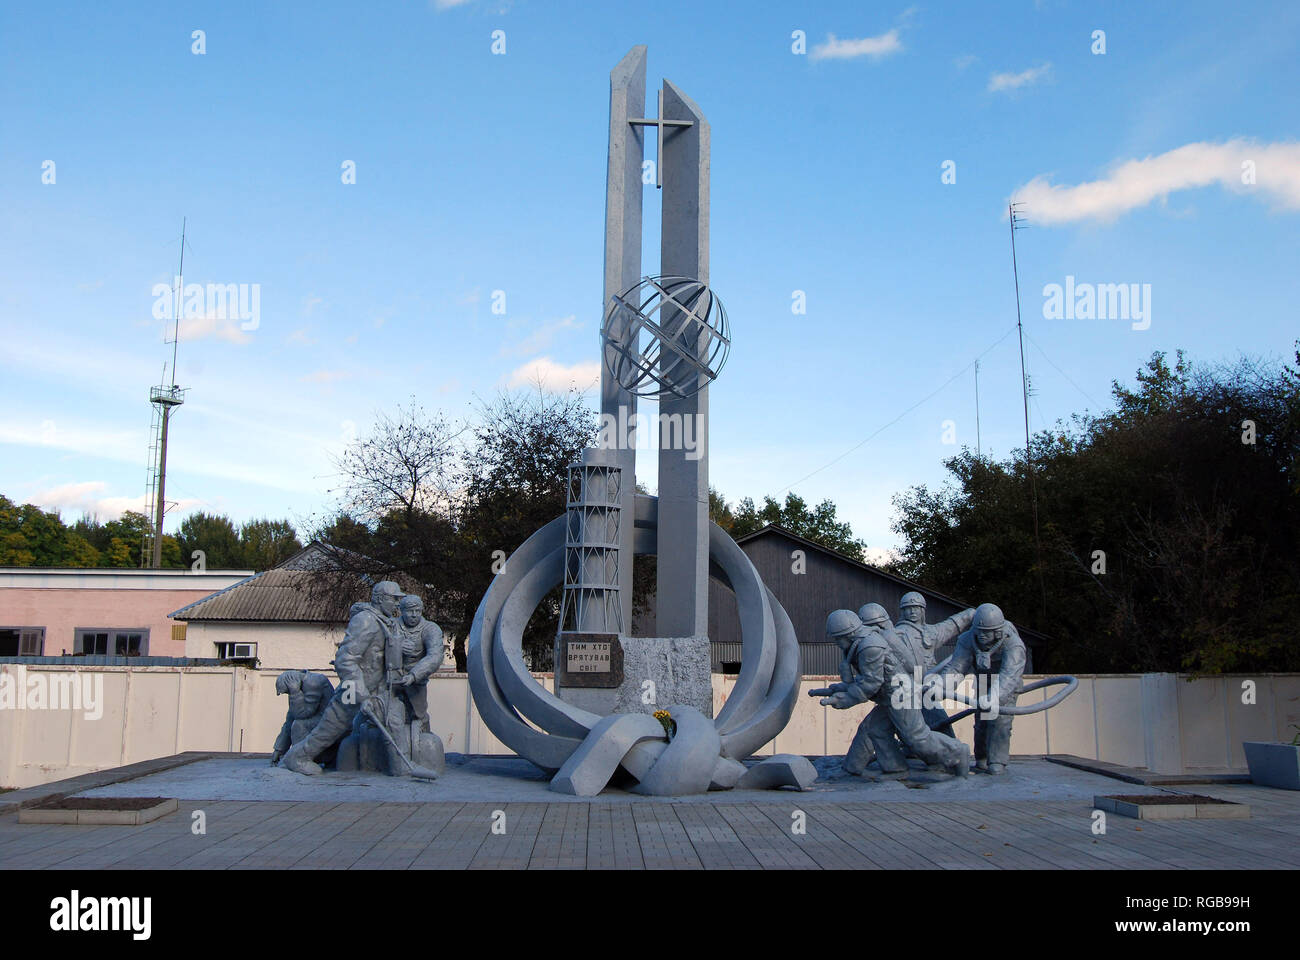 Monument to the Liquidators of Chernobyl who bravely dealt with the nuclear disaster in 1986 - Stock Image